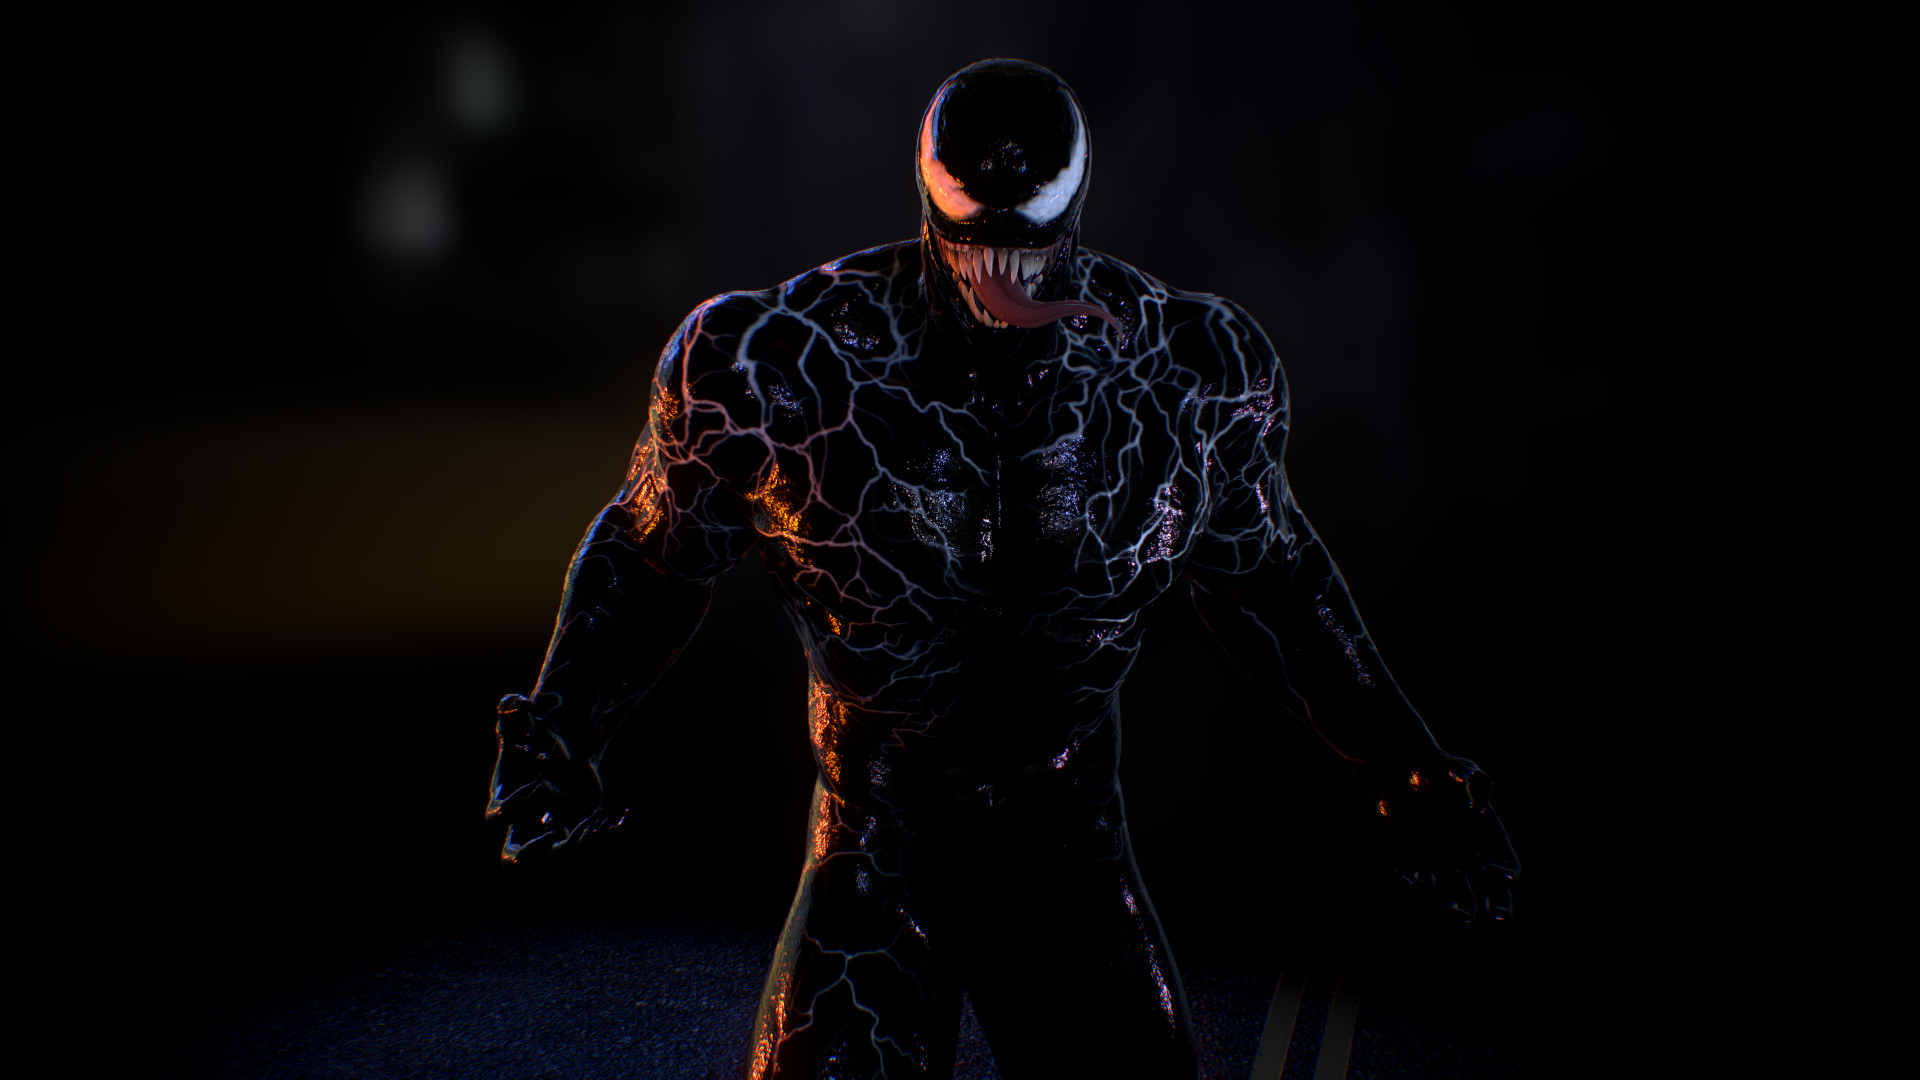 Sony Venom Hd Superheroes 4k Wallpapers Images Backgrounds